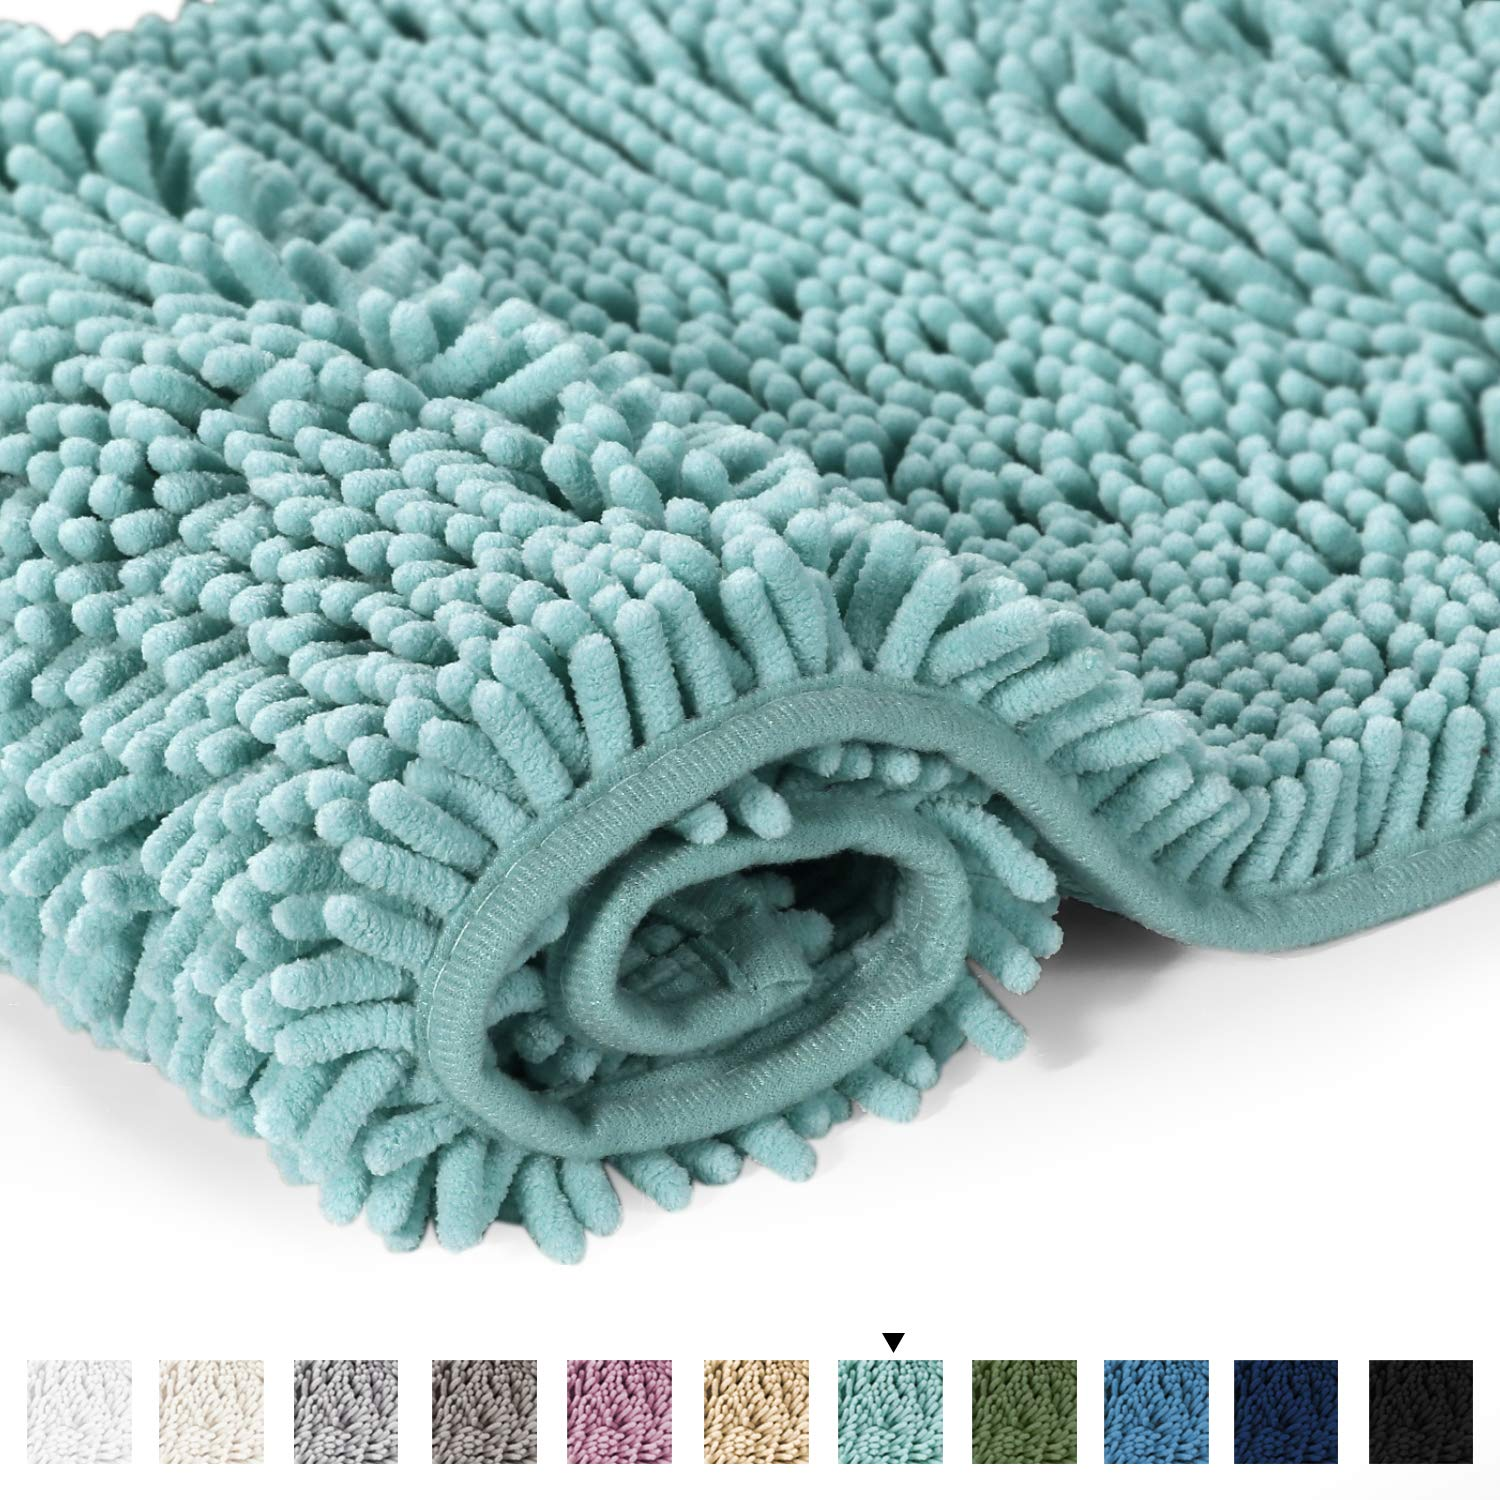 "Bathroom Rug Shag Shower Mat Machine-Washable Plush Bath Mats with Water Absorbent Soft Microfibers, 20"" W x 32"" L, Eggshell Blue"